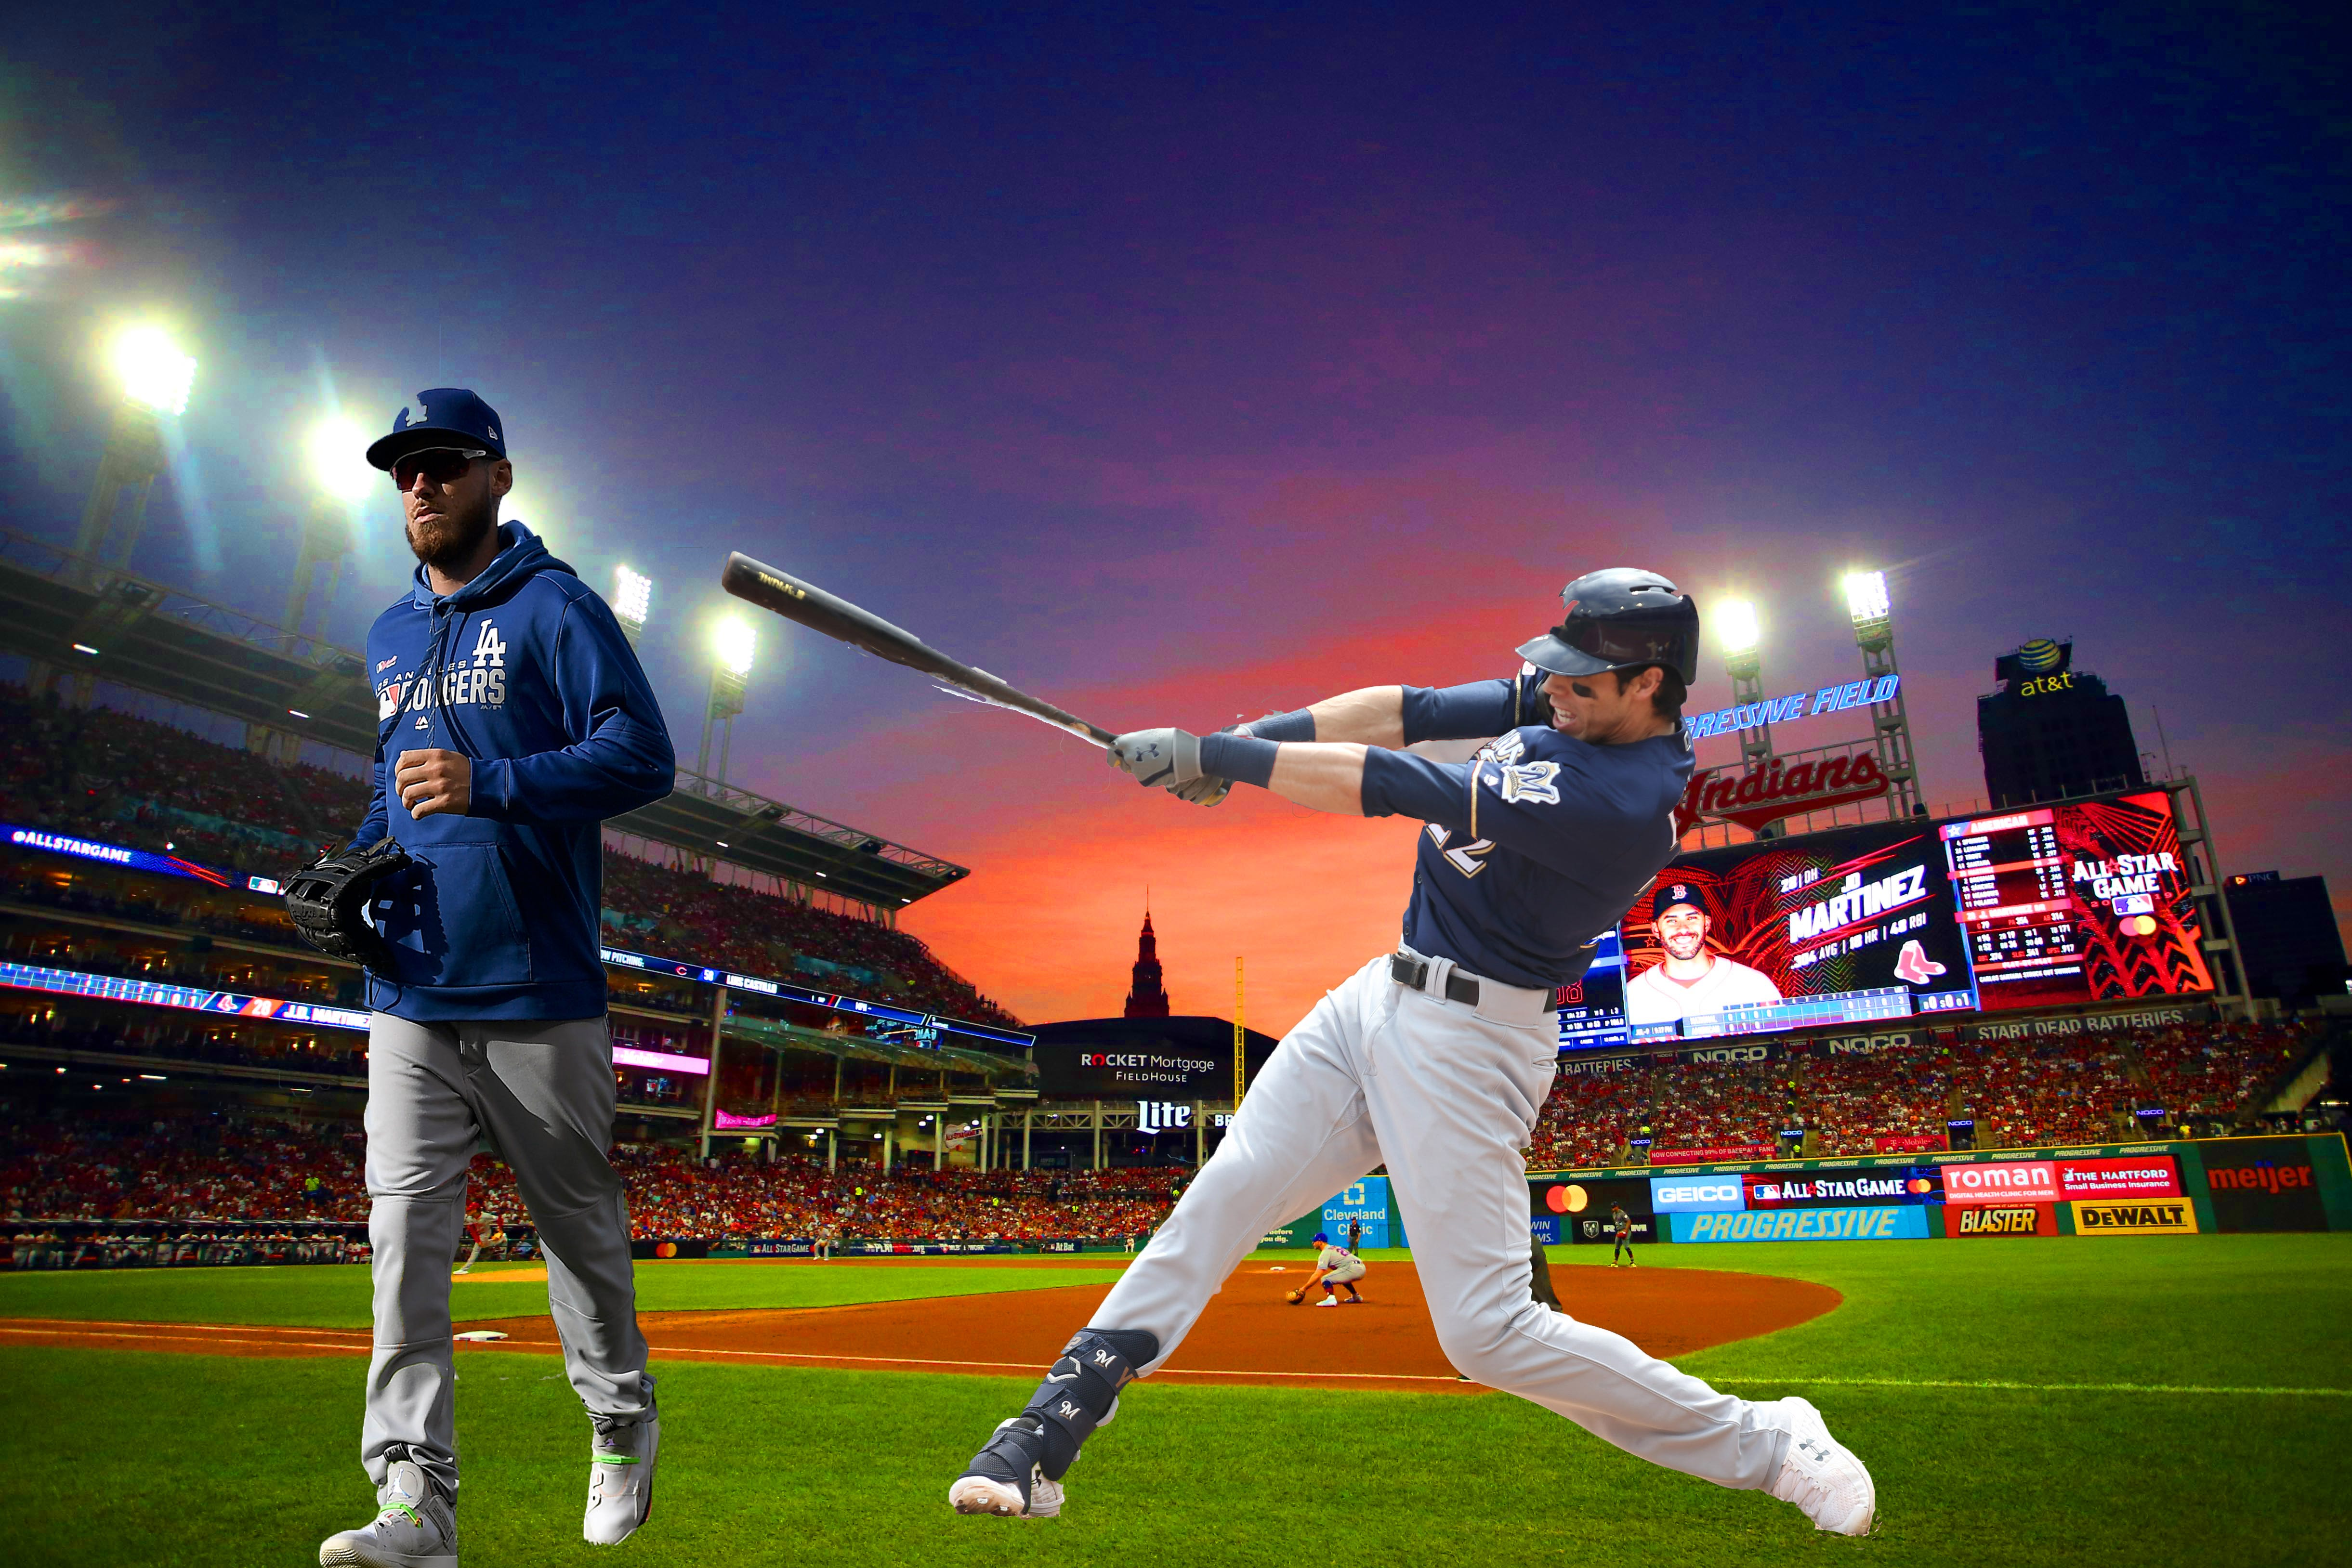 How Many Games In Mlb Season 2020.Best Moments From The 2019 Mlb All Star Game